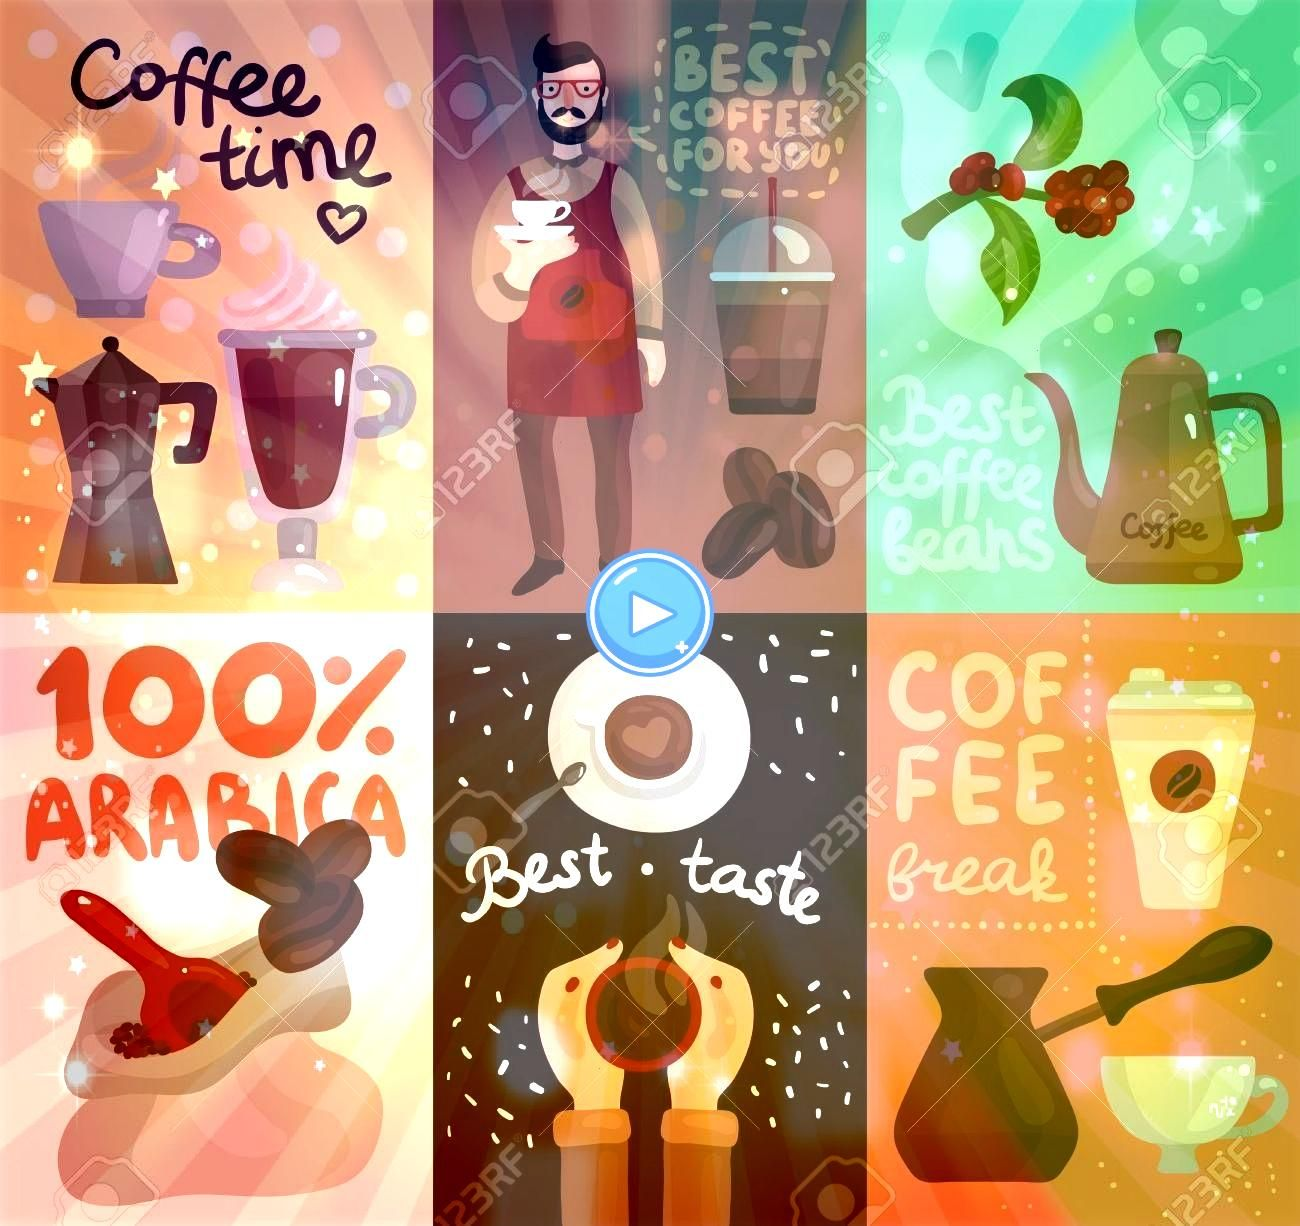 production cards with advertising of best coffee beans and taste of arabica sort flat vector illustration Coffee production cards with advertising of best coffee beans an...